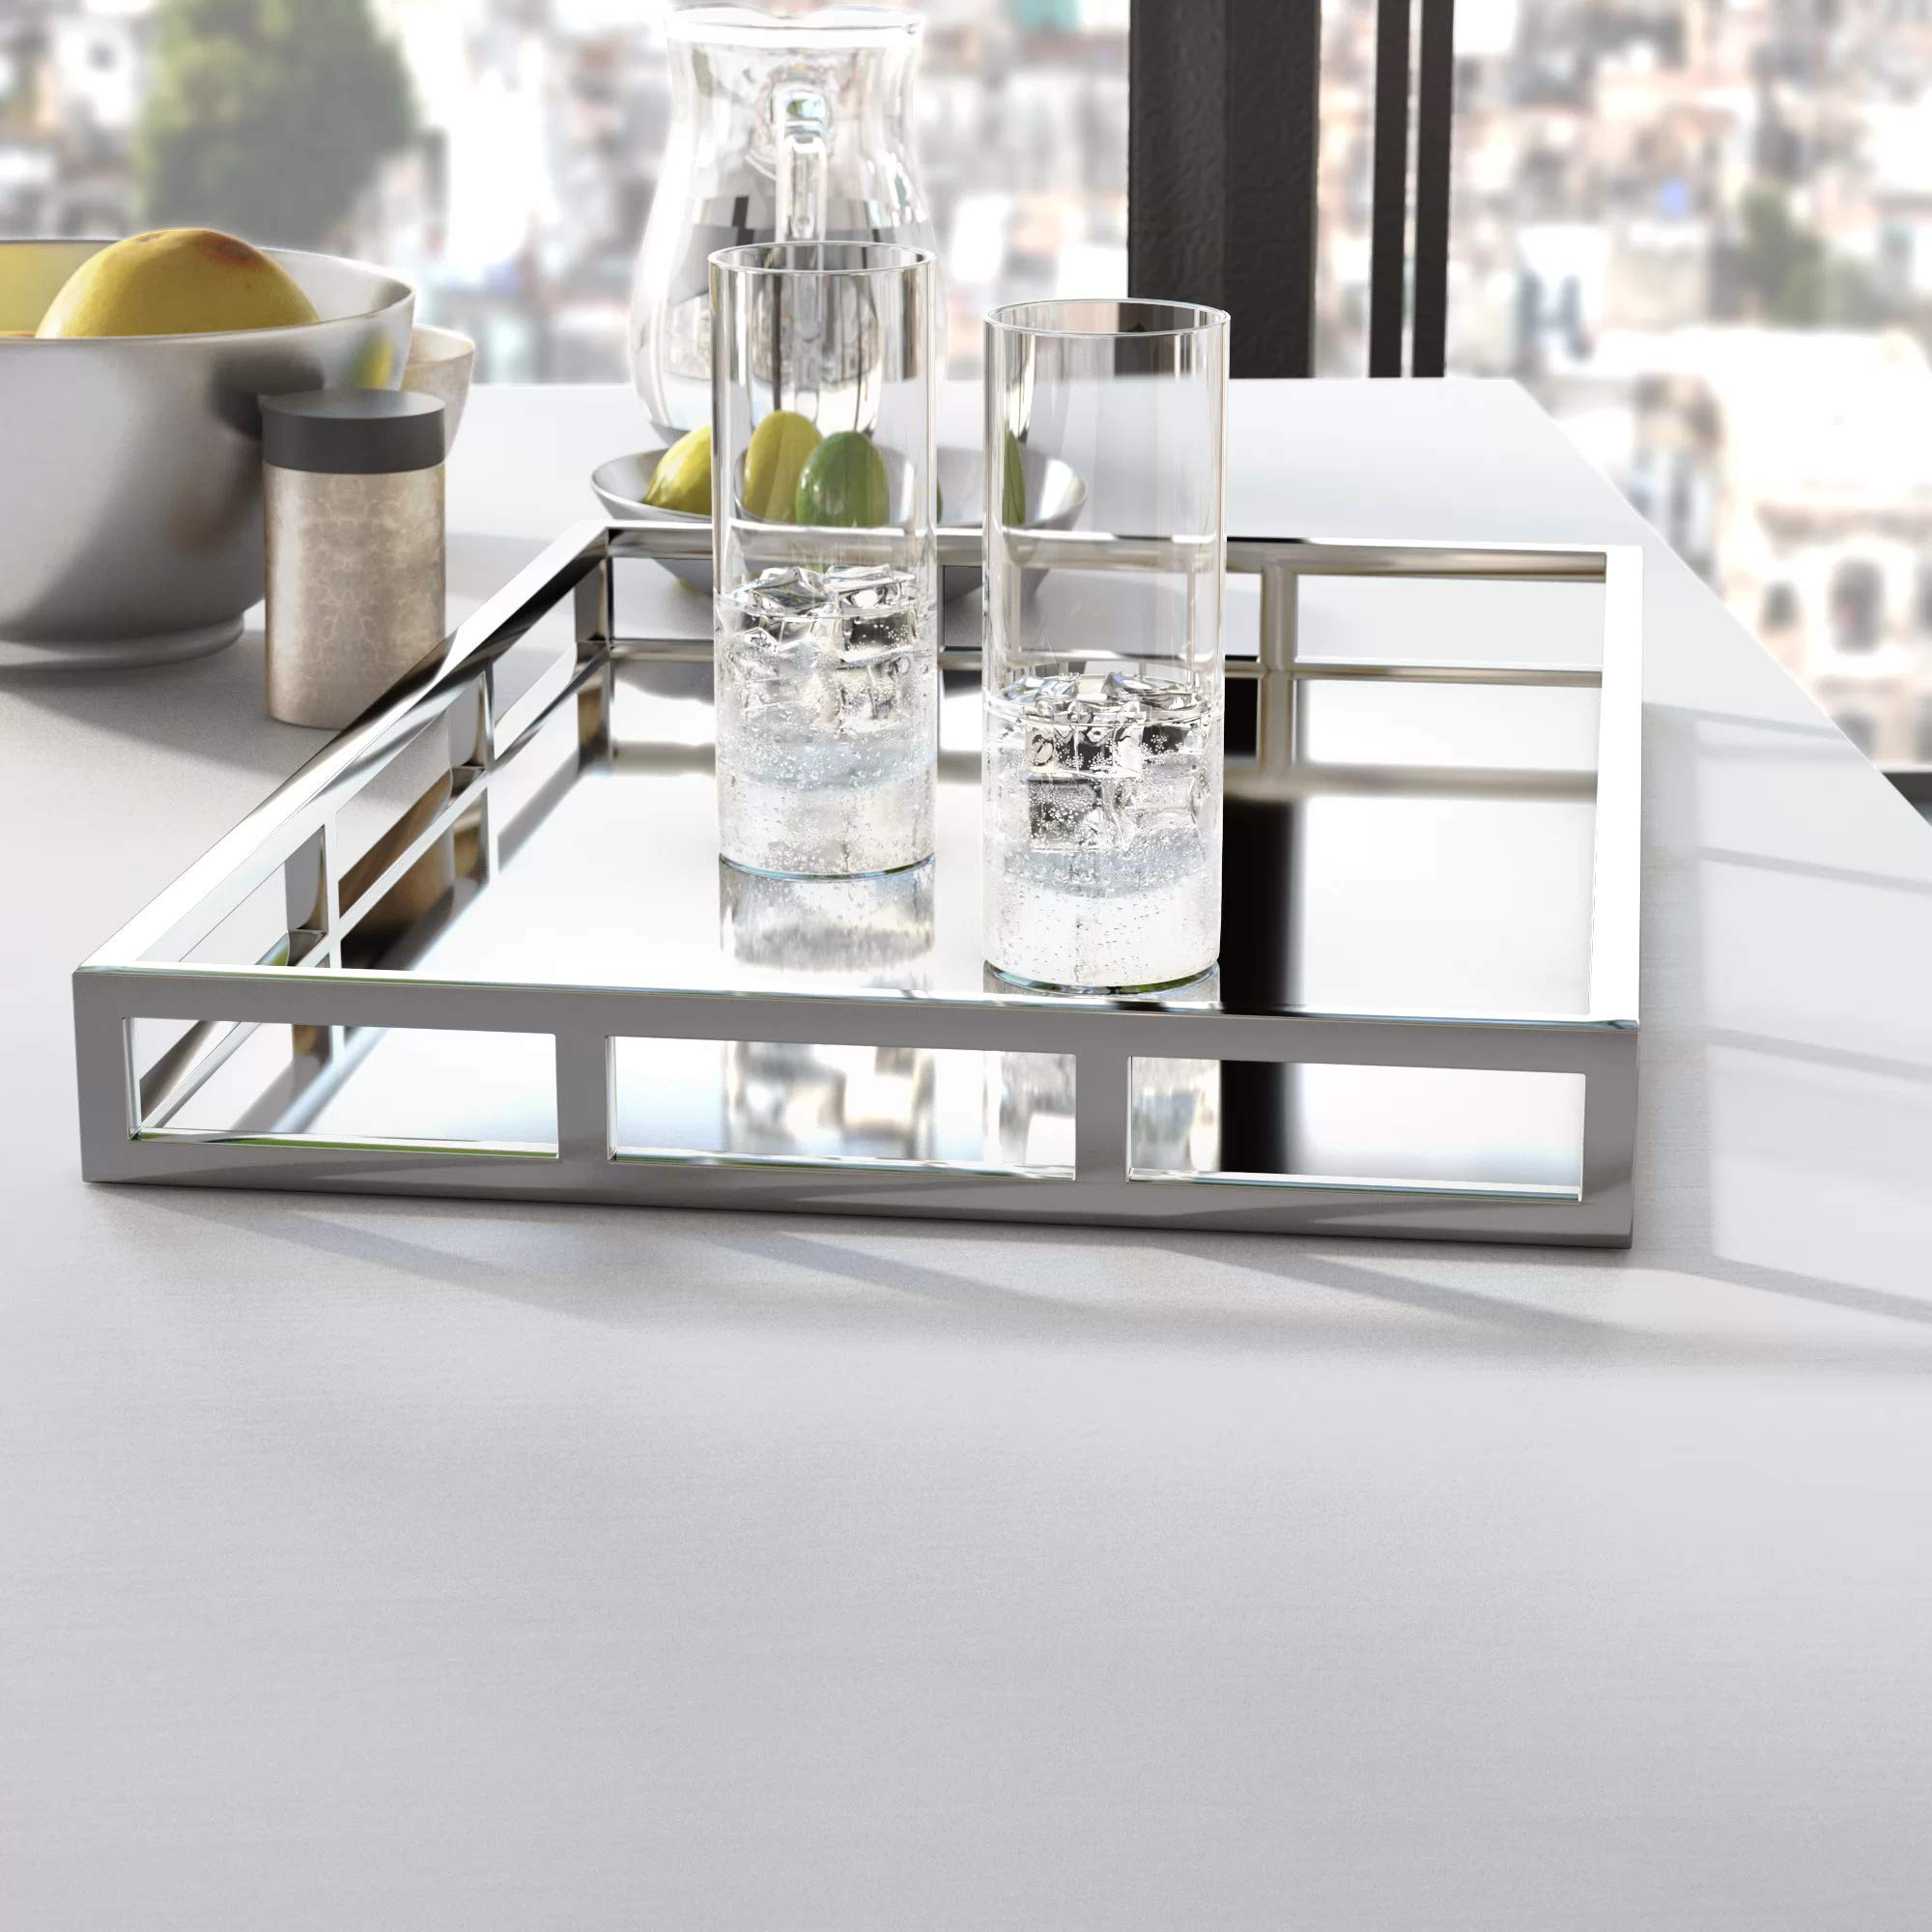 Le'raze Mirrored Vanity Tray, Decorative Tray with Chrome Rails for Display, Perfume, Vanity, Dresser and Bathroom, Elegant mirror tray Makes A Great Bling Gift –16X10 Inch by Le'raze (Image #2)